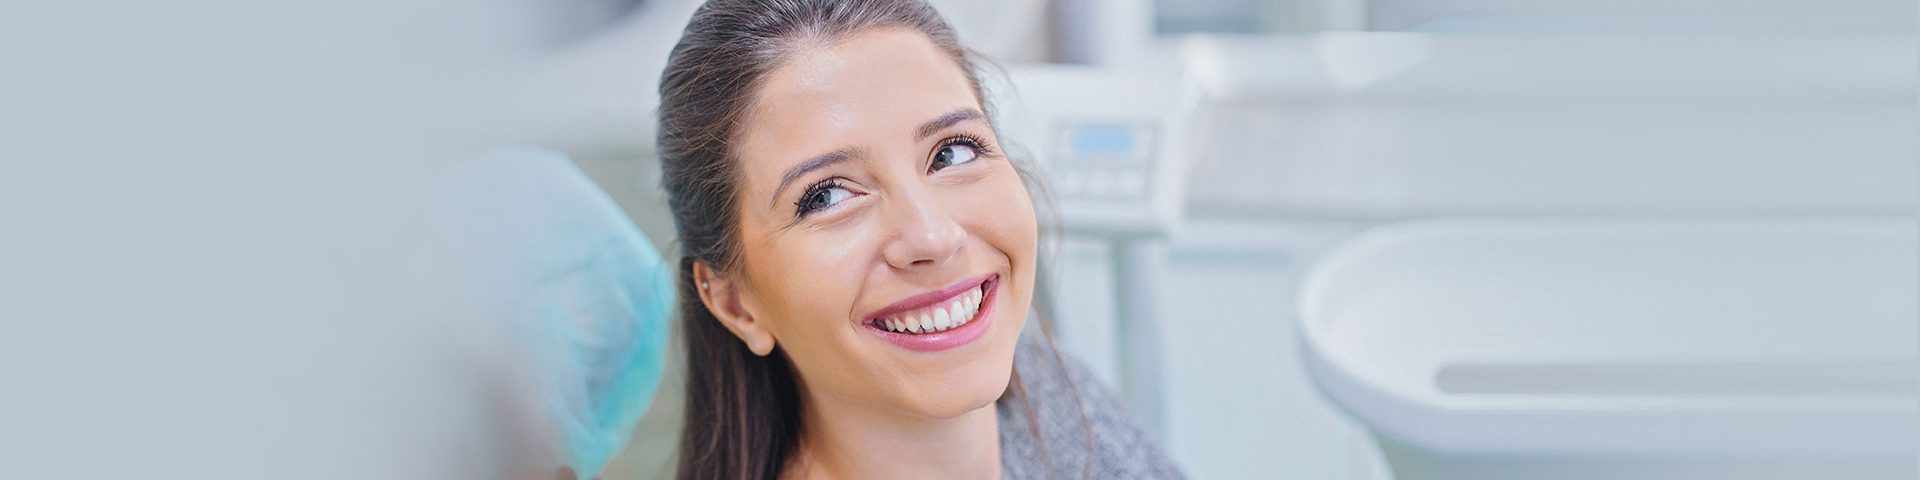 The Benefits and Risks of Teeth Whitening